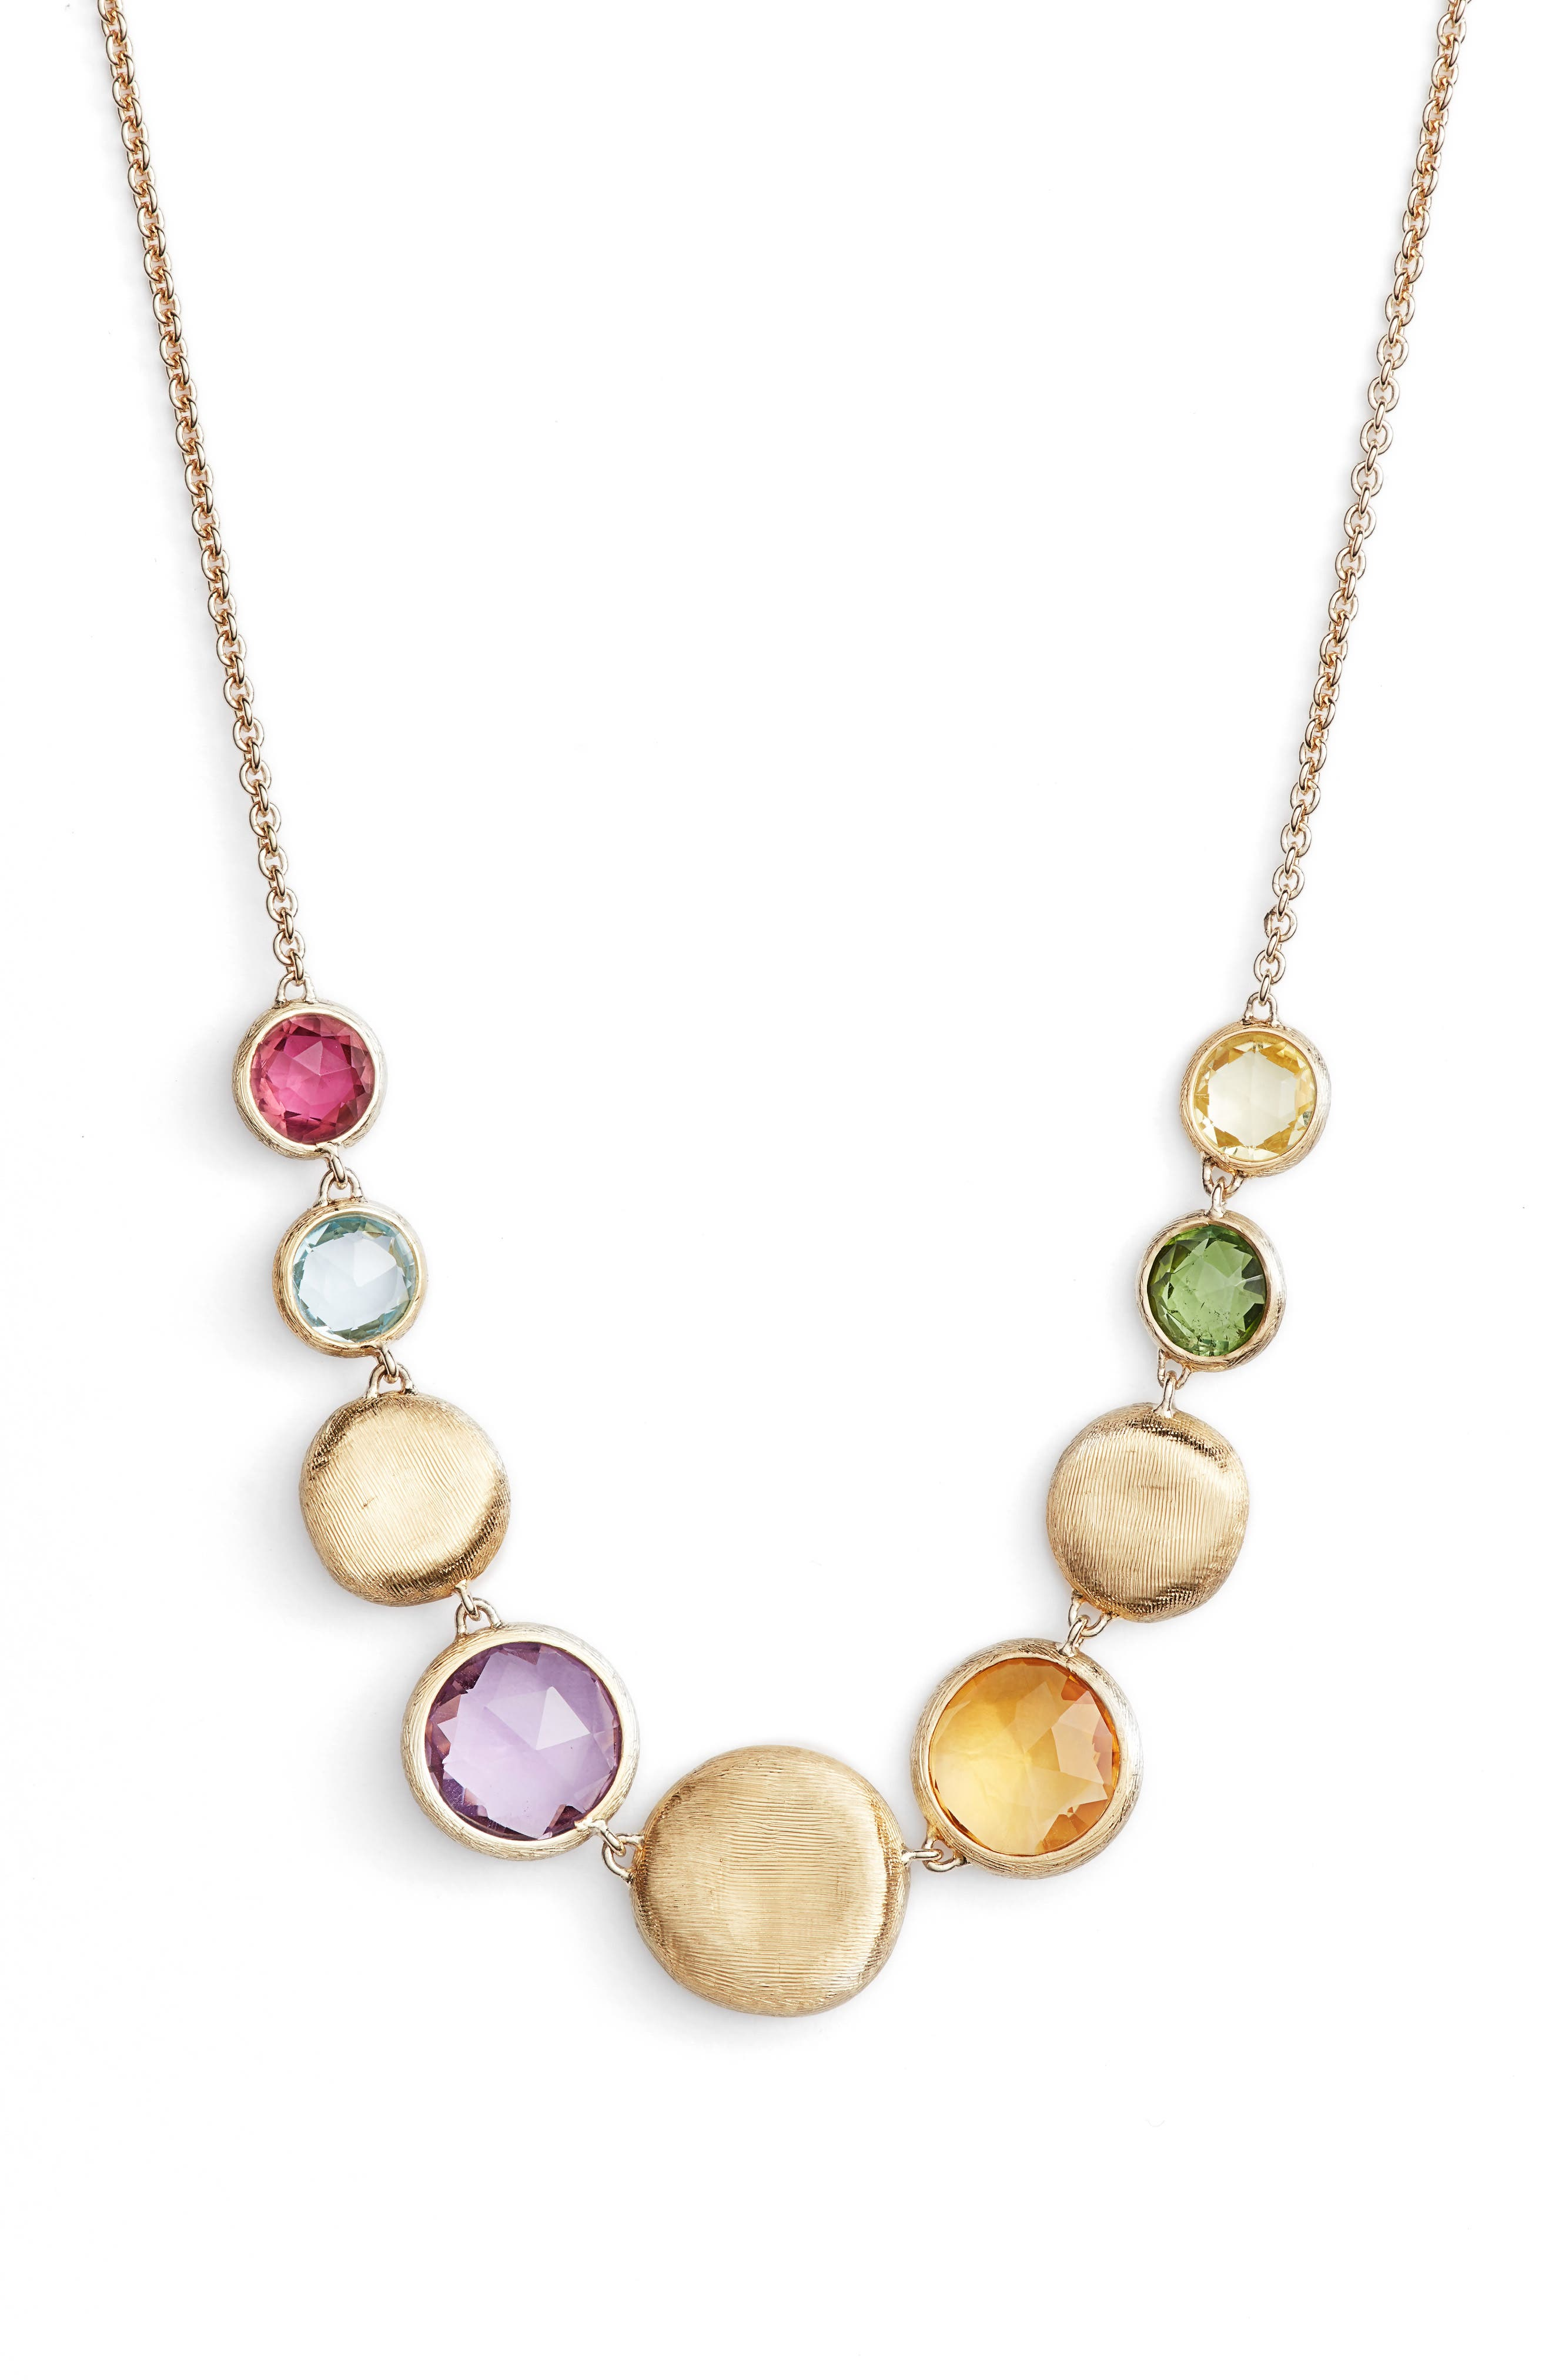 Main Image - Marco Bicego Jaipur Semiprecious Stone Collar Necklace